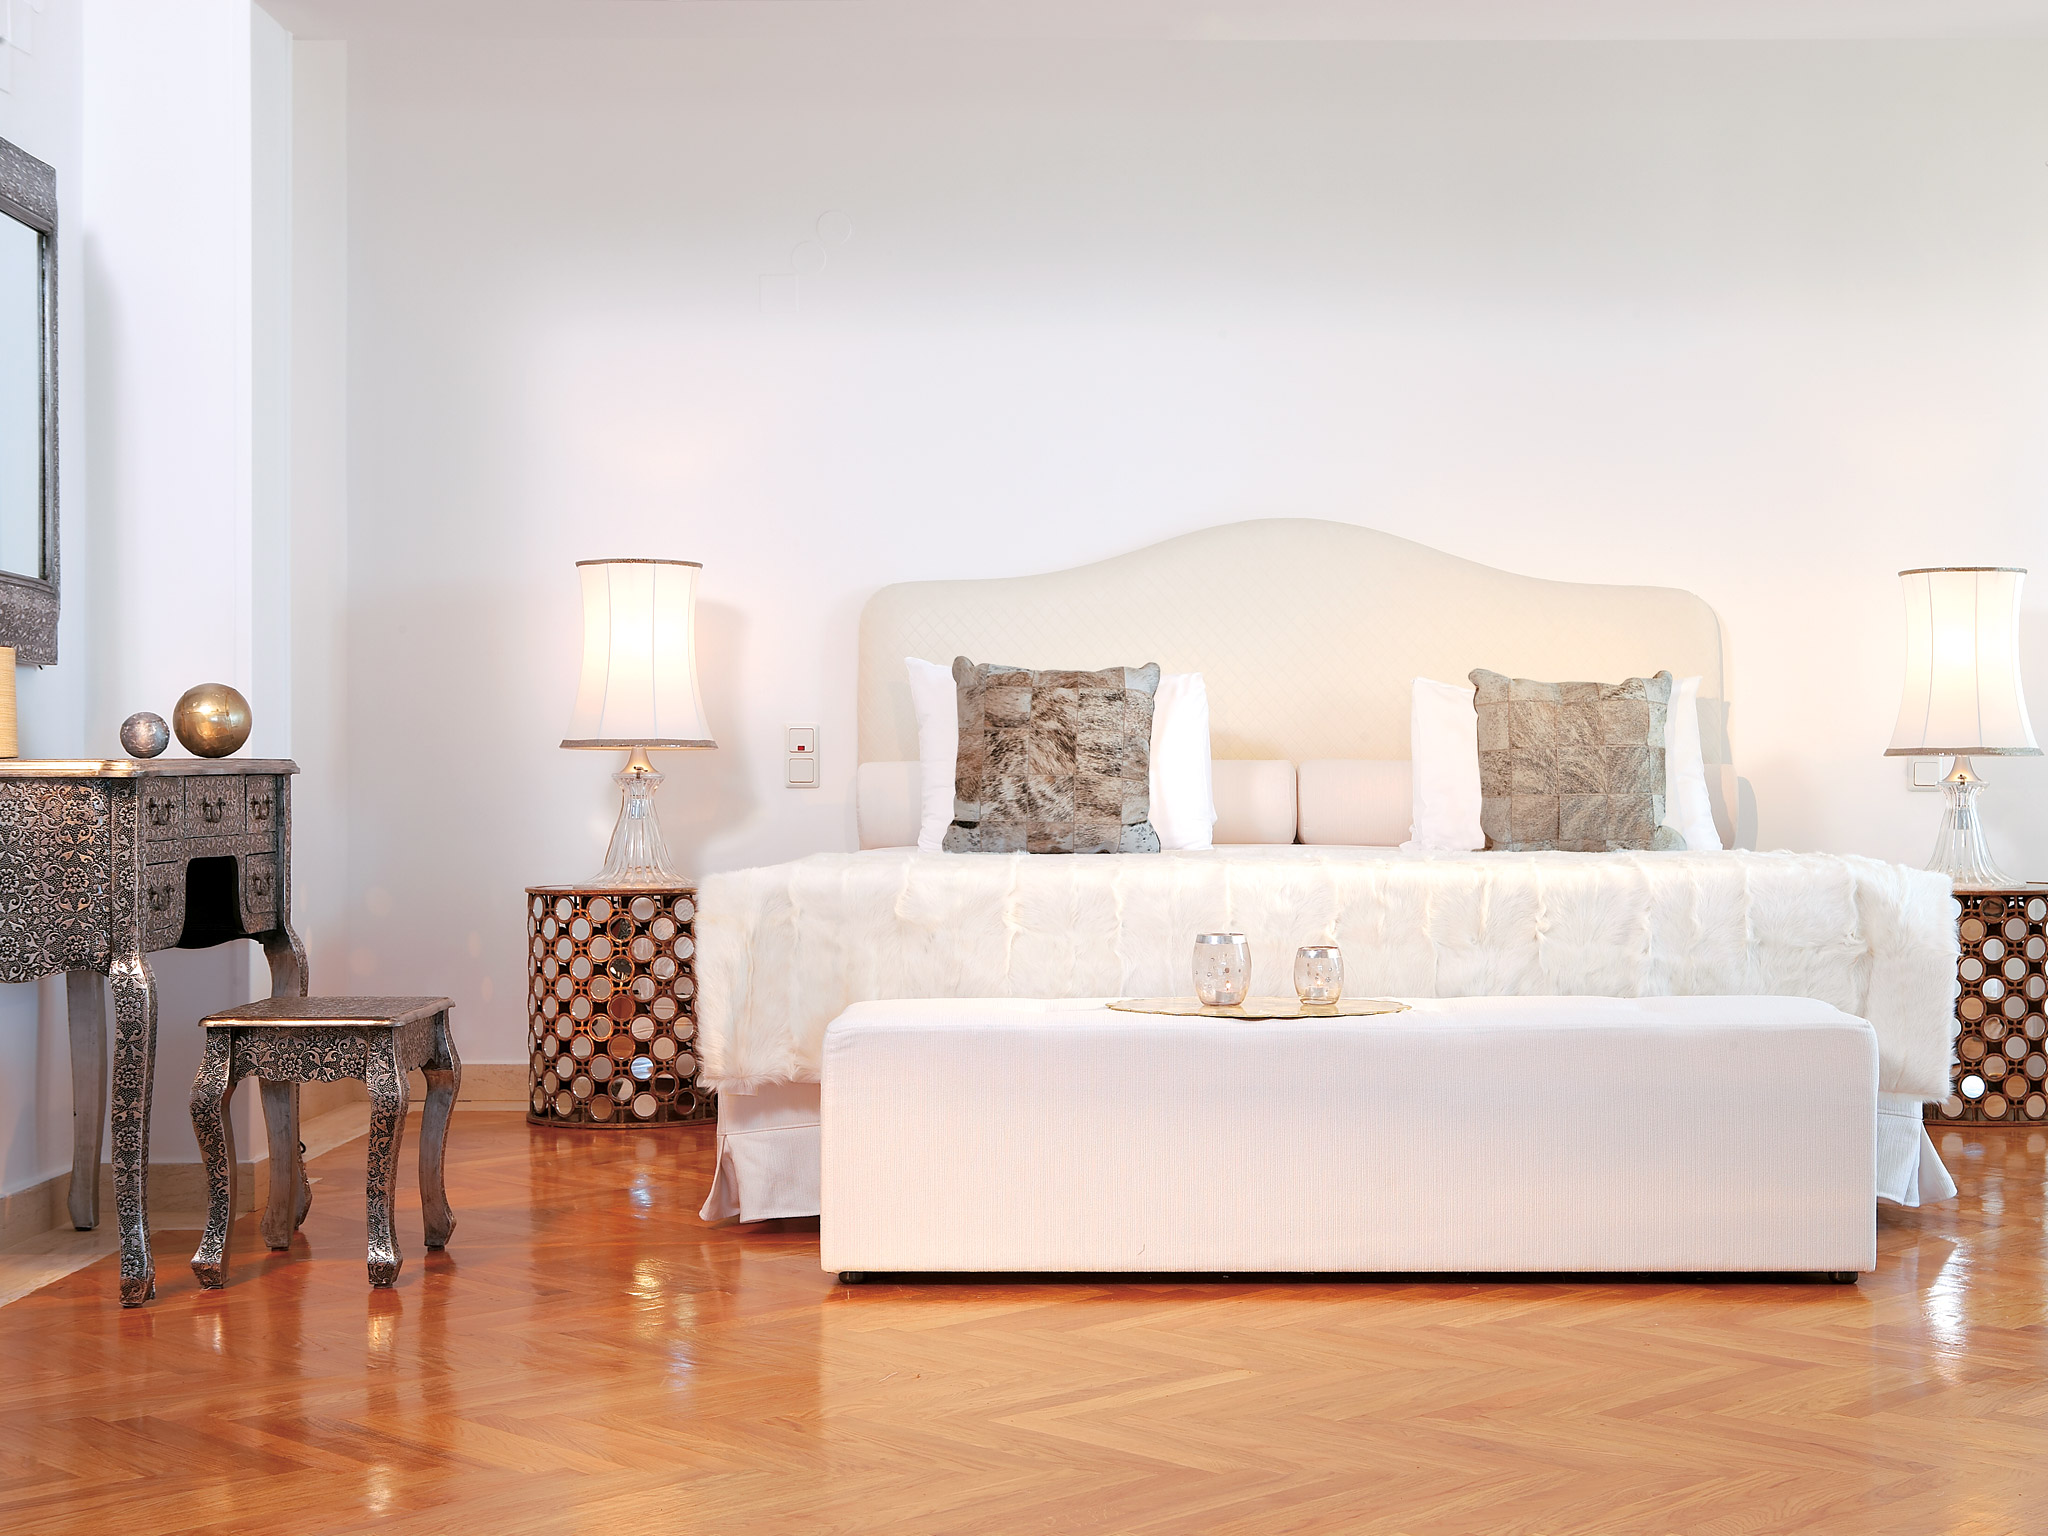 luxury accommodation in crete creta palace;